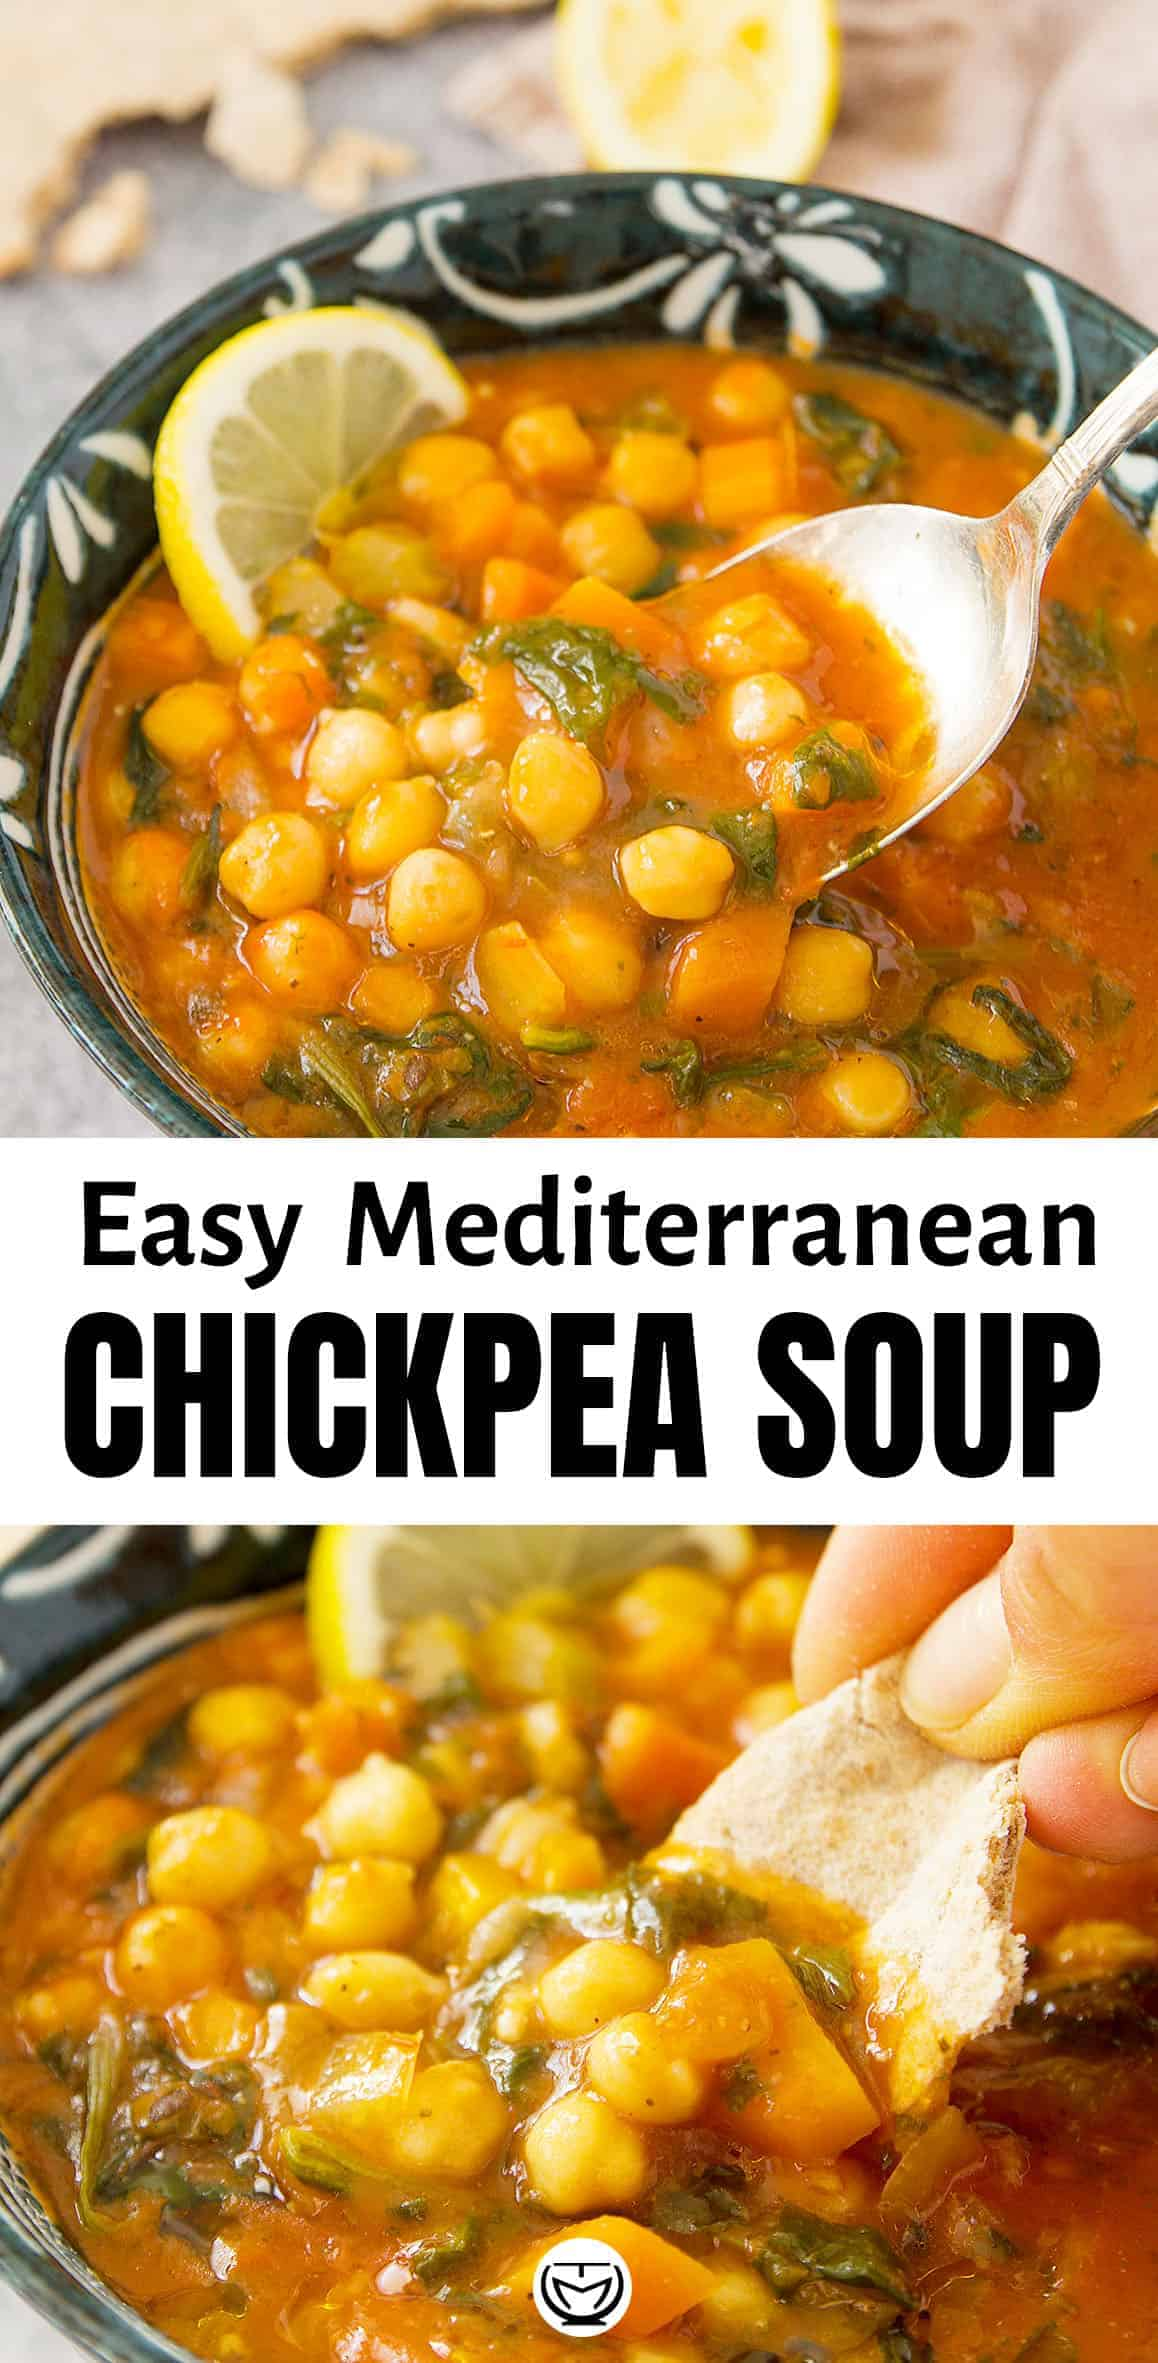 This delicious and hearty Mediterranean chickpea soup is made with cheap cupboard essentials and frozen spinach. A healthy and flavoursome meal ready in no time!